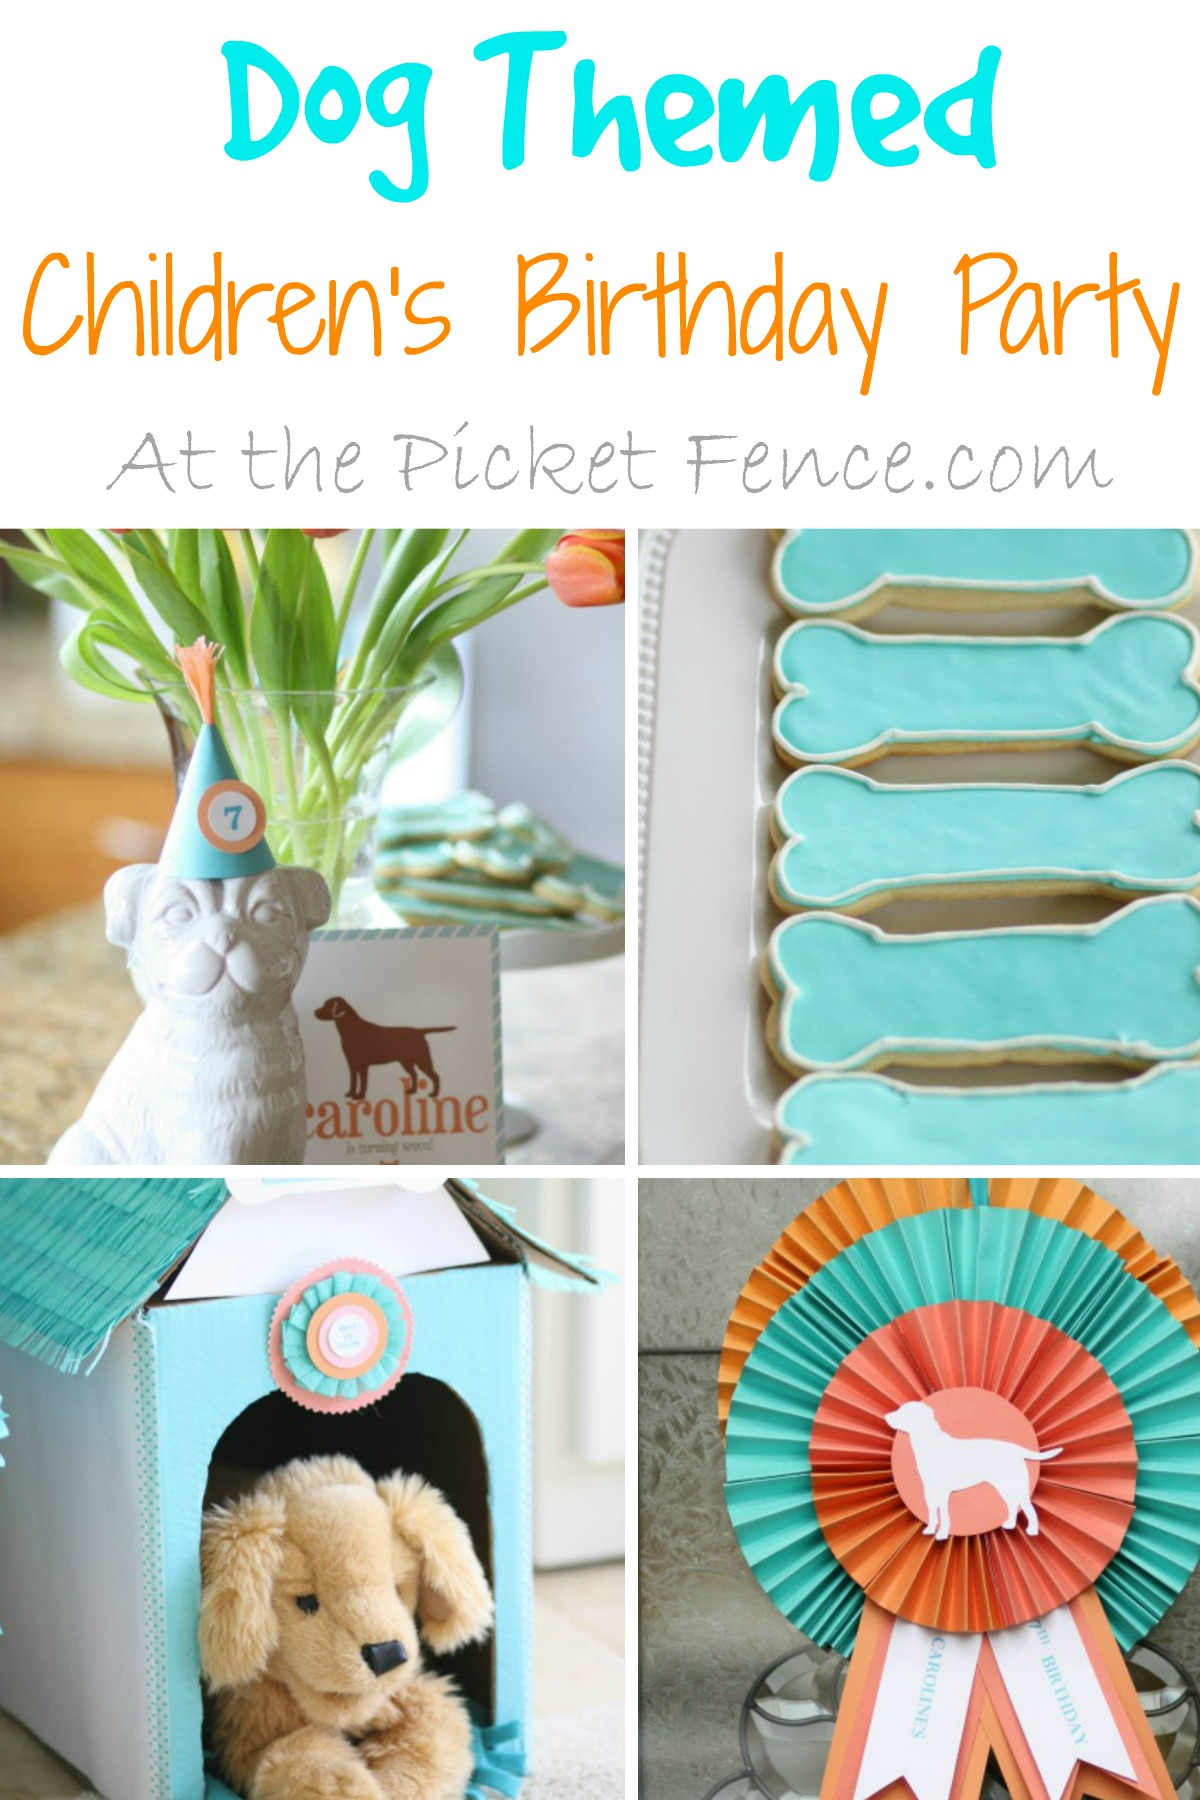 Dog themed children s birthday party from atthepicketfence com